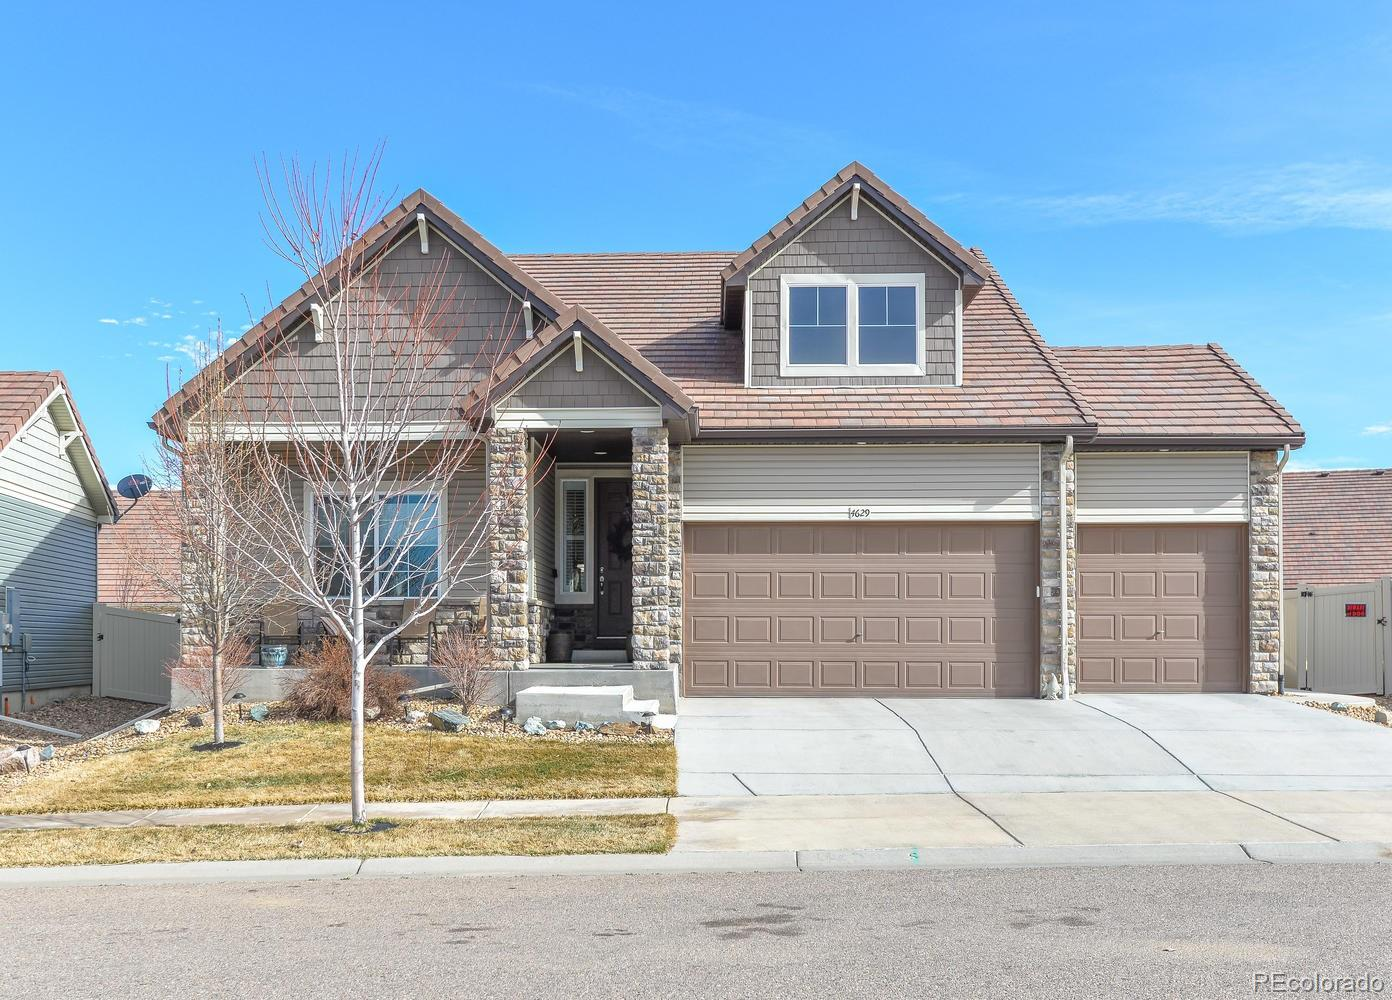 4629 Widwood Way, Johnstown, CO 80534 - Johnstown, CO real estate listing